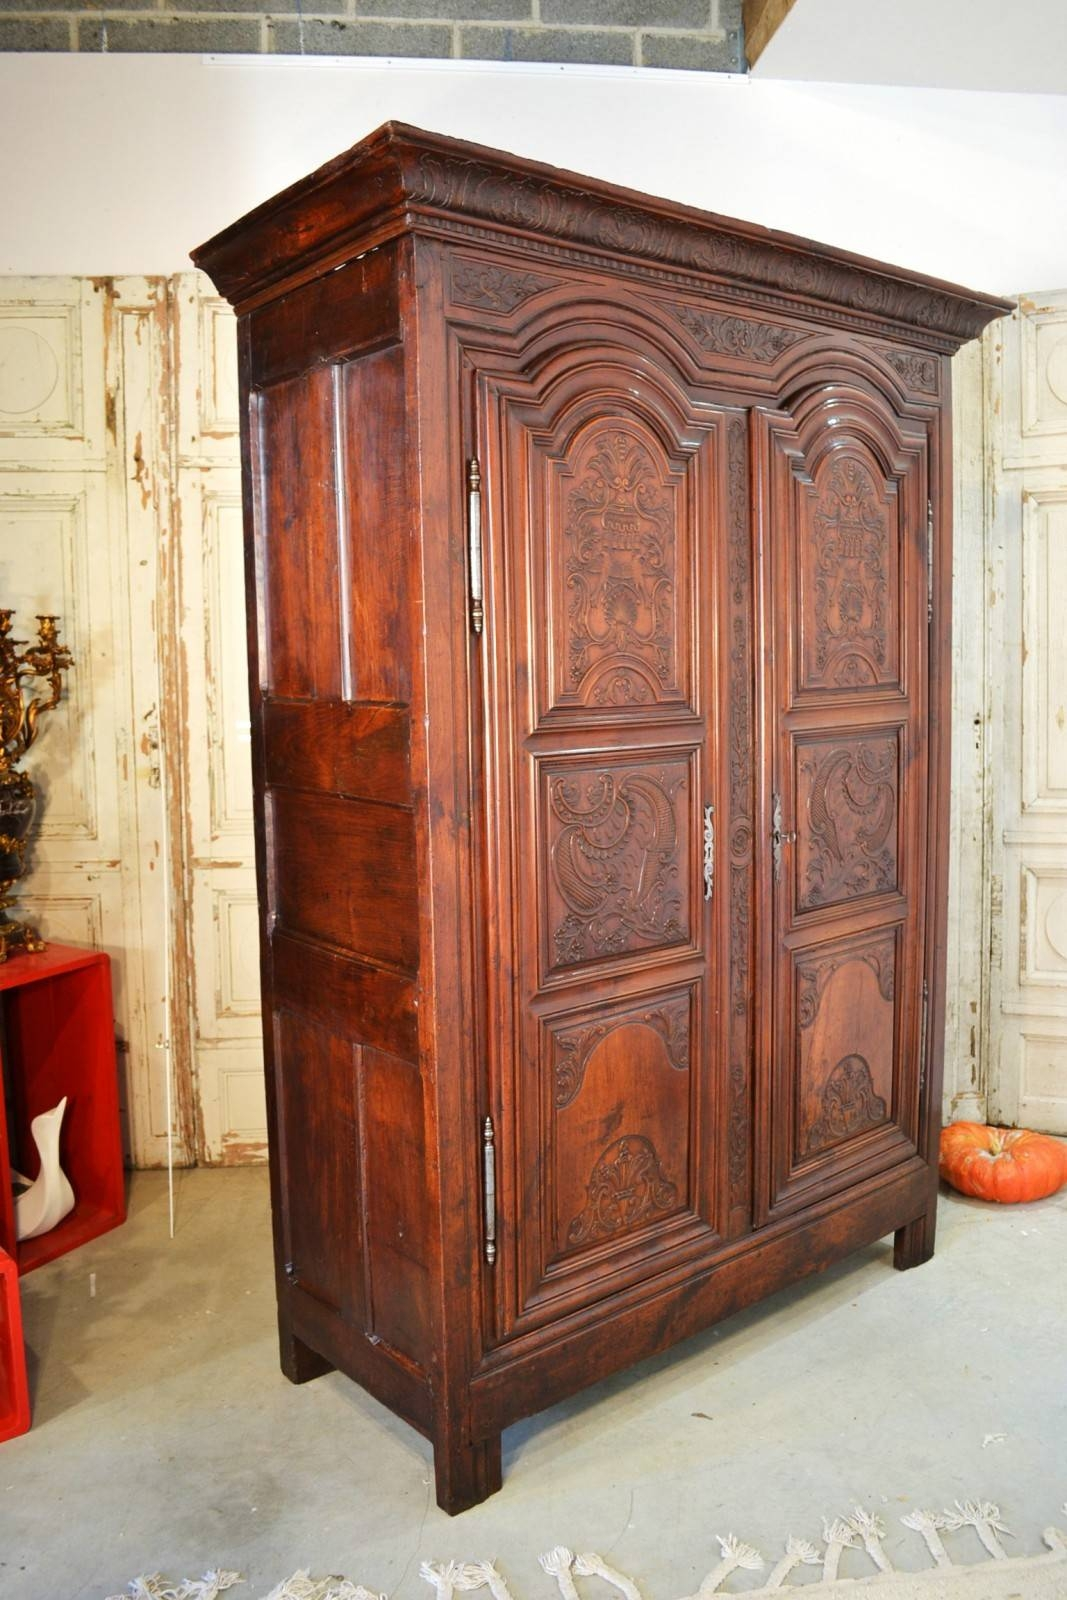 Antique French Armoire For Sale | Antic France in French Wardrobes for Sale (Image 2 of 15)